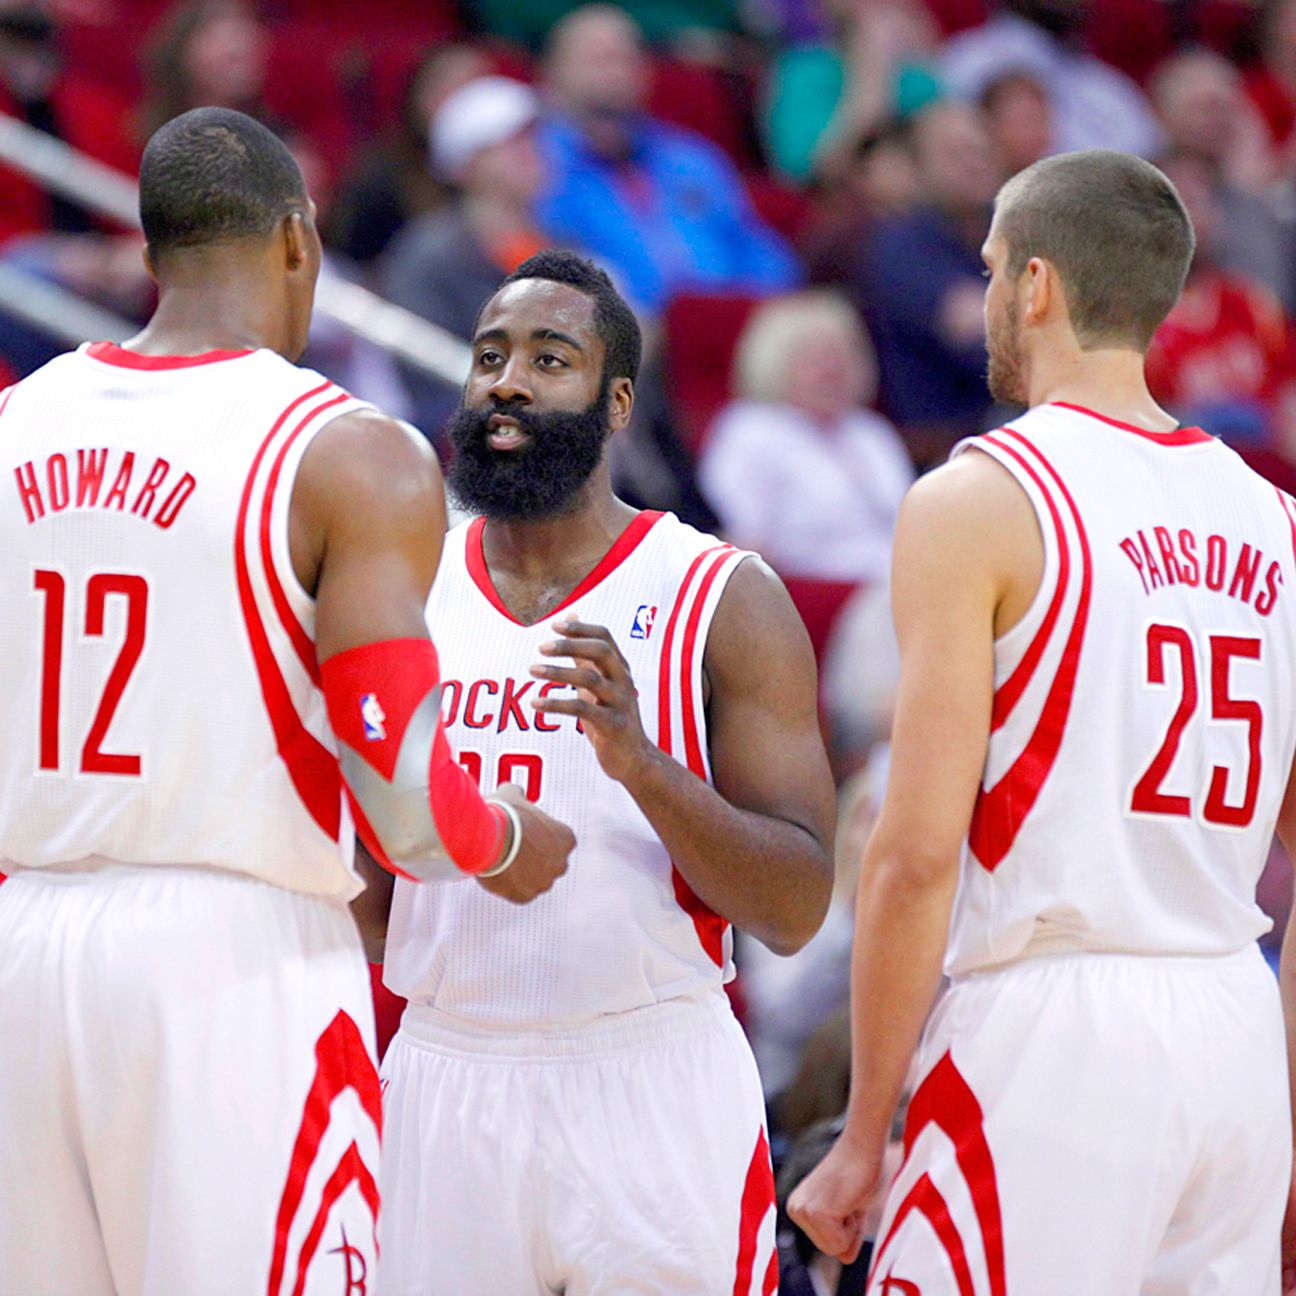 Roster Reload: Next Moves For Houston Rockets